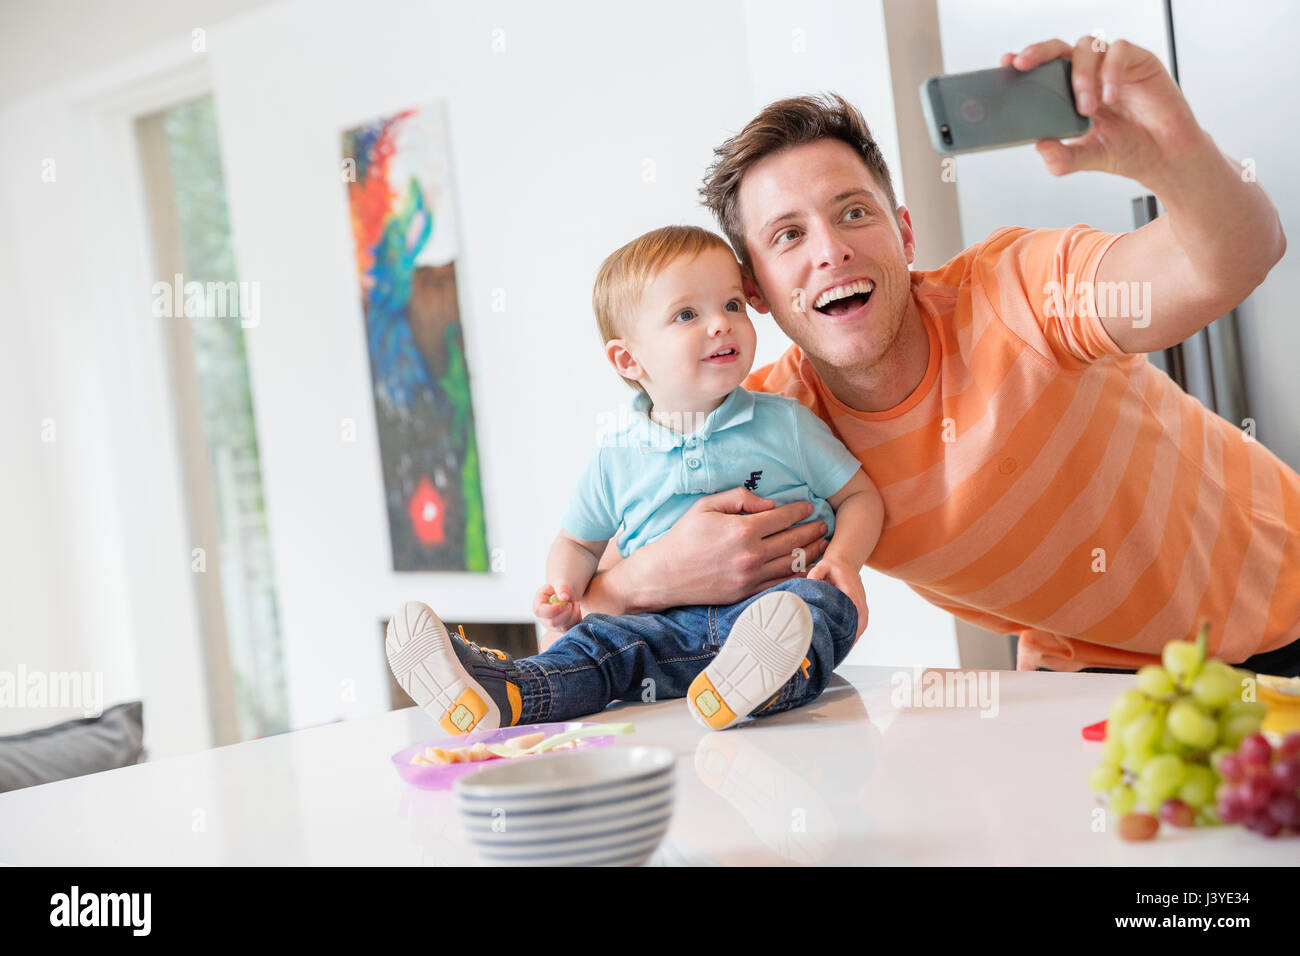 father and toddler son taking selfie in kitchen at home Stock Photo